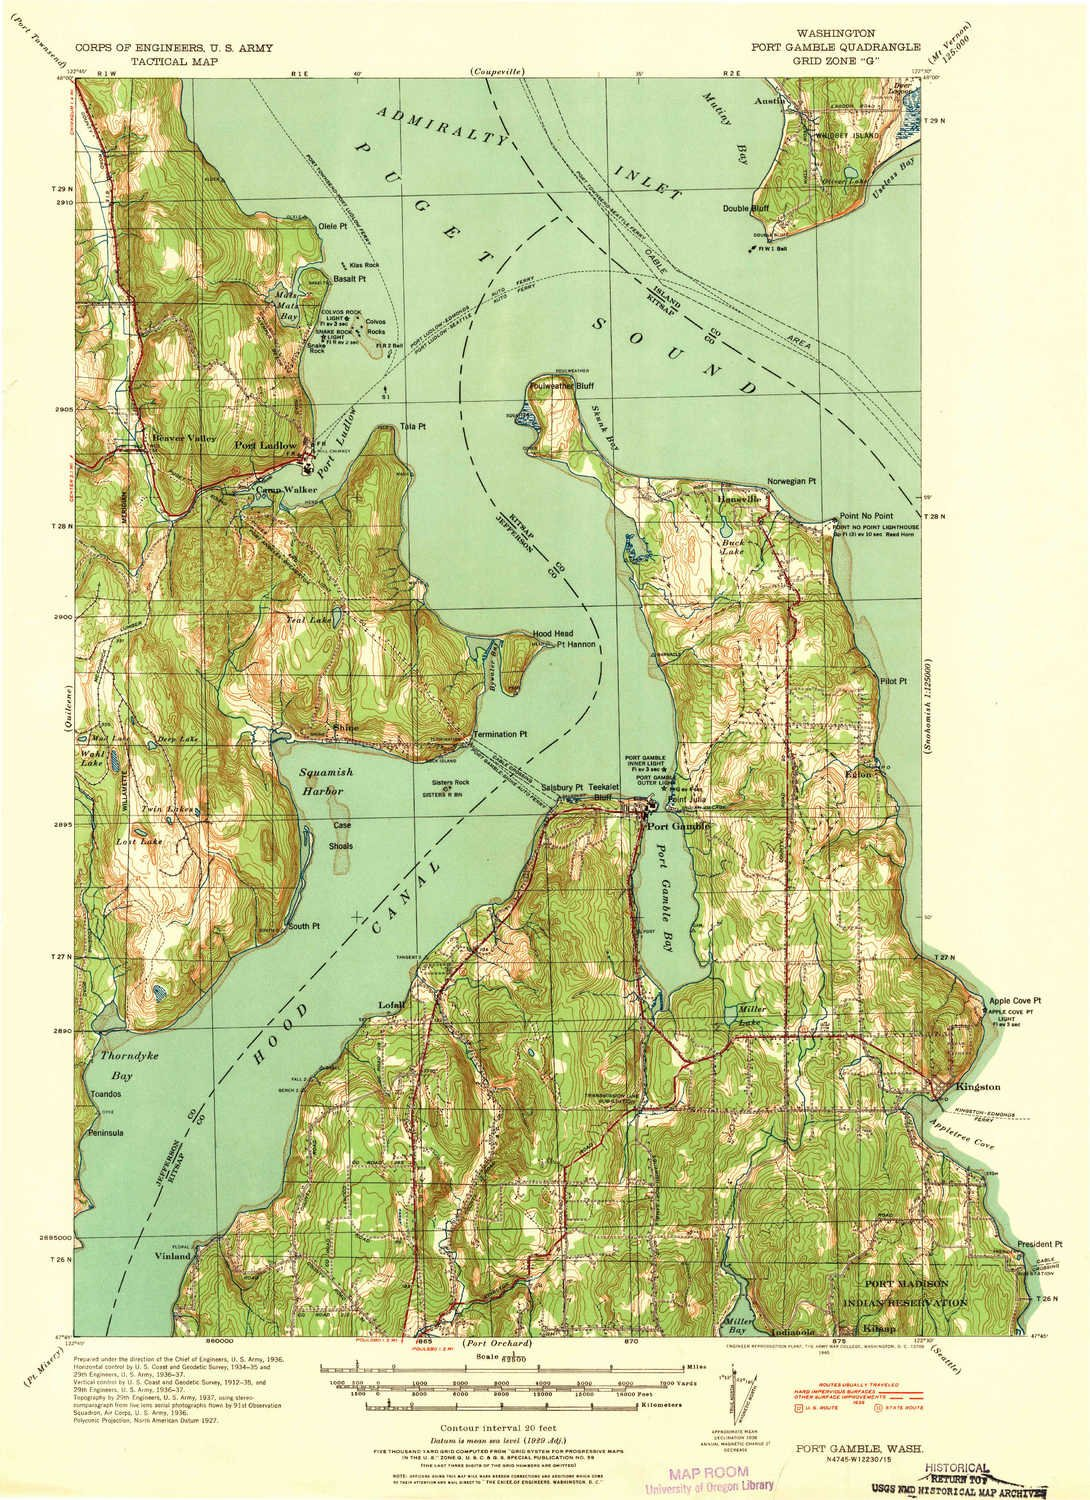 Port Gamble Washington Map.Amazon Com Yellowmaps Port Gamble Wa Topo Map 1 62500 Scale 15 X